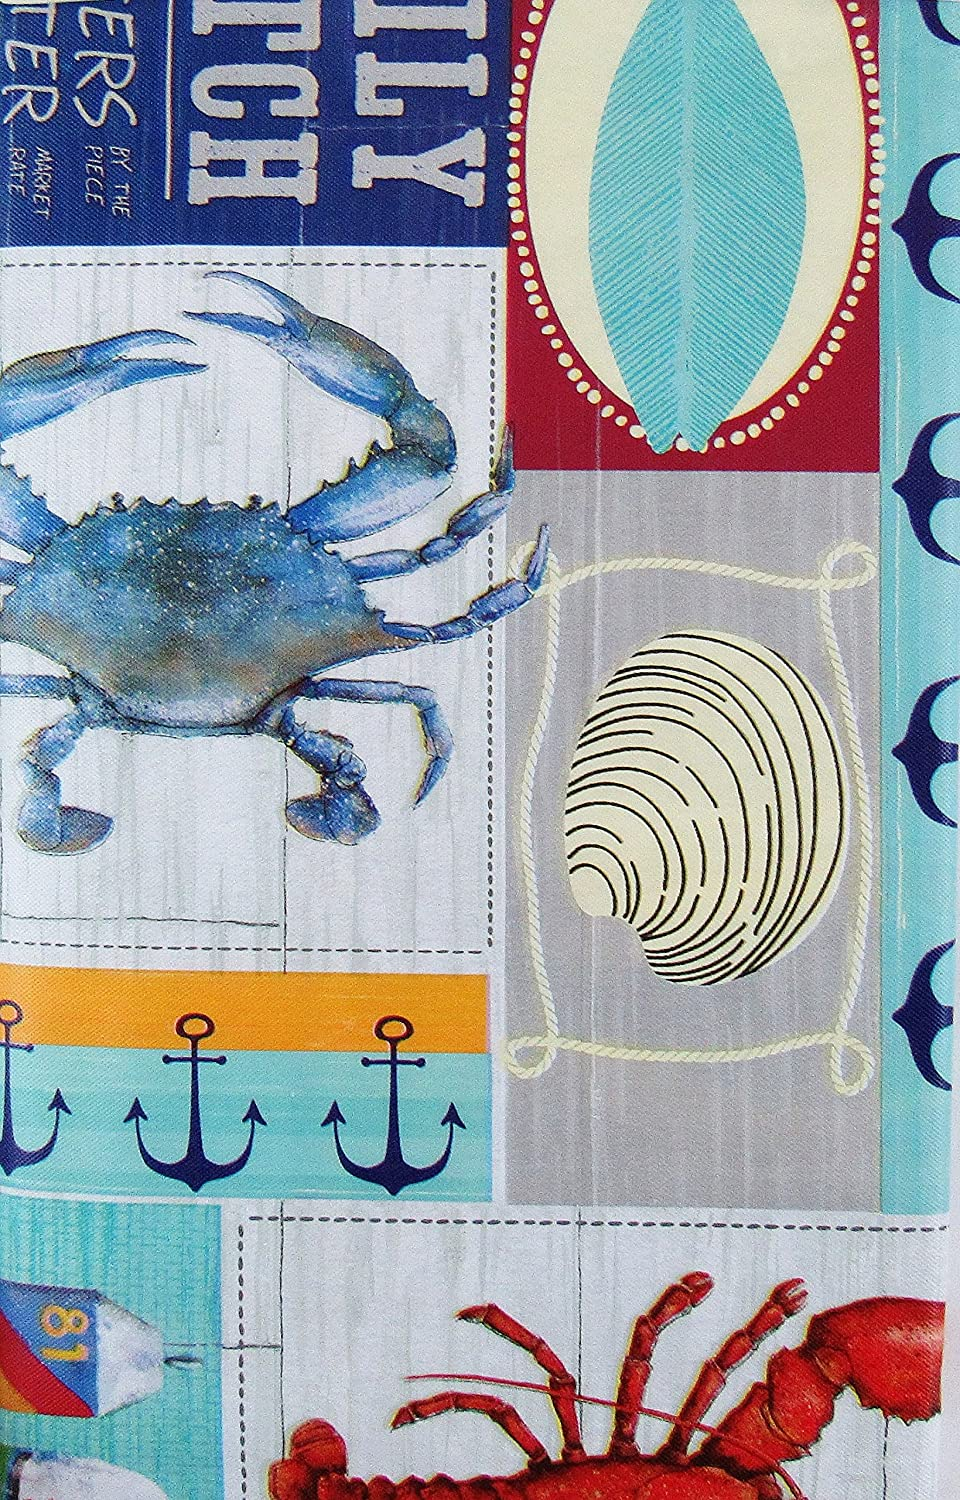 Elrene Home Fashions COMINHKPR149493 60 Round Daily Catch Boat Docks Patchwork Vinyl Flannel Back Tablecloth